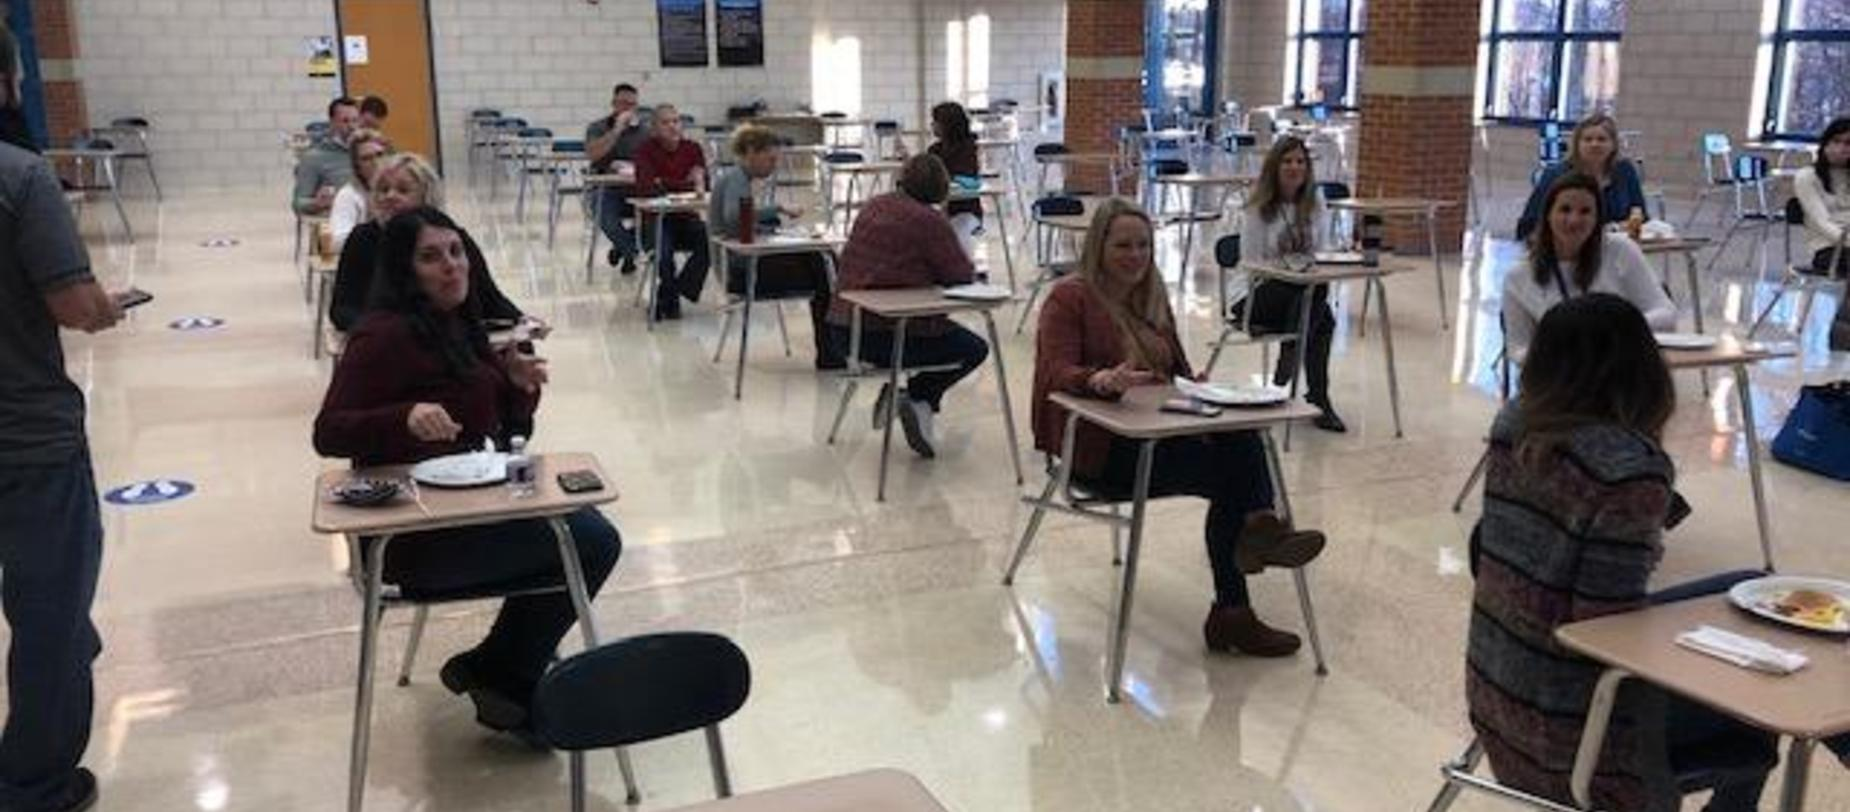 Teachers in the cafeteria for an appreciation breakfast